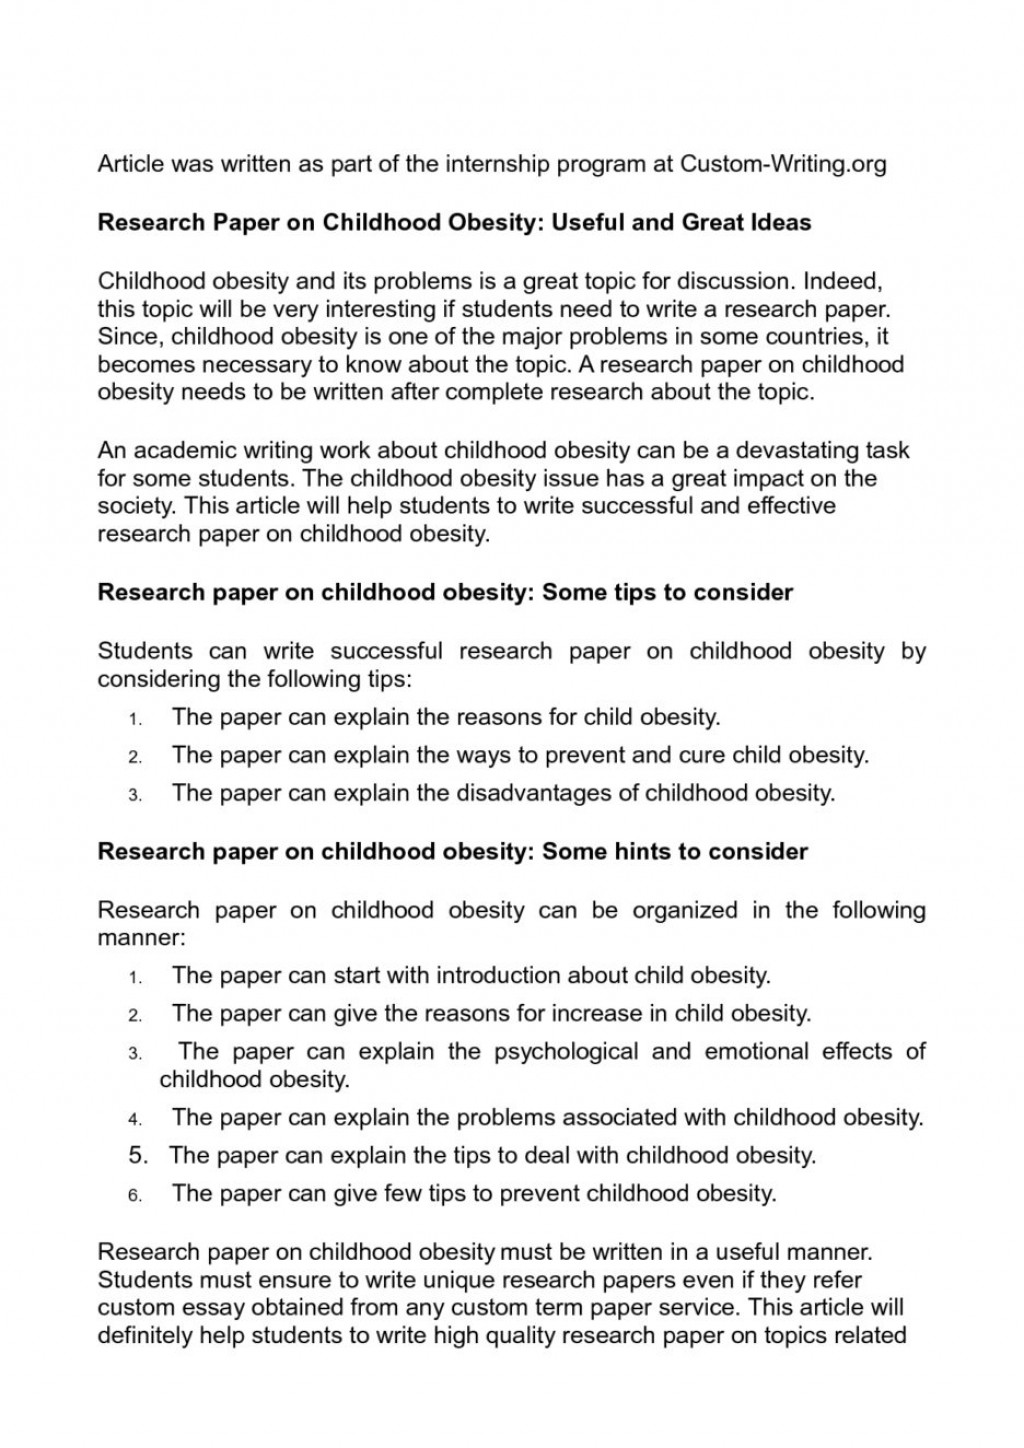 011 Essay Example Essays On Childhood Obesity Www Vikingsna Org For Examples Cause Effect Samples Free Good And Phenomenal Topics High School Students College Large